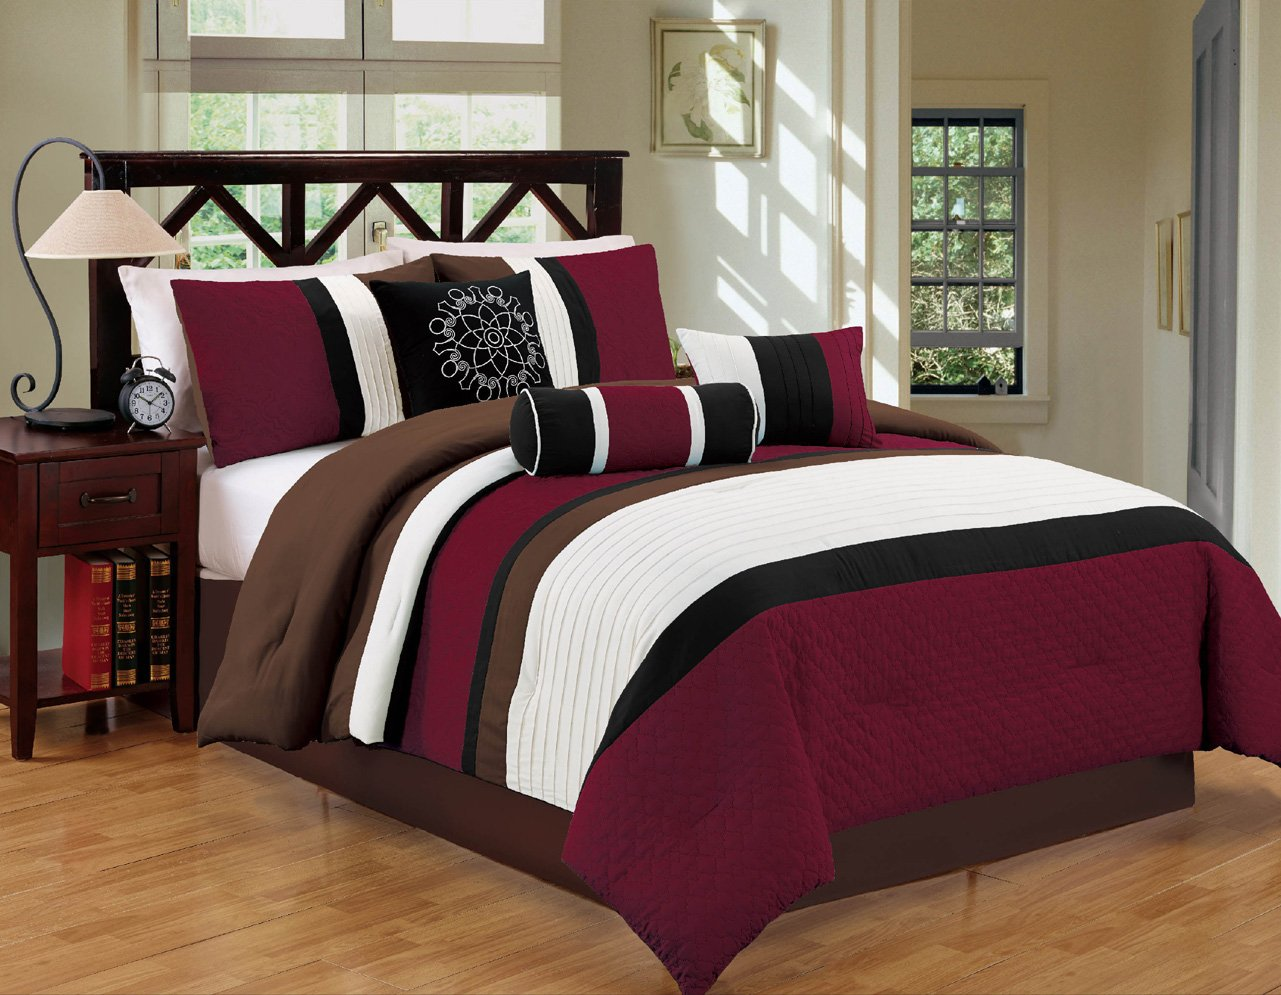 Modern 7 Piece Bedding Burgundy / Brown / White / Black Pin Tuck / Embroidered King Comforter Set